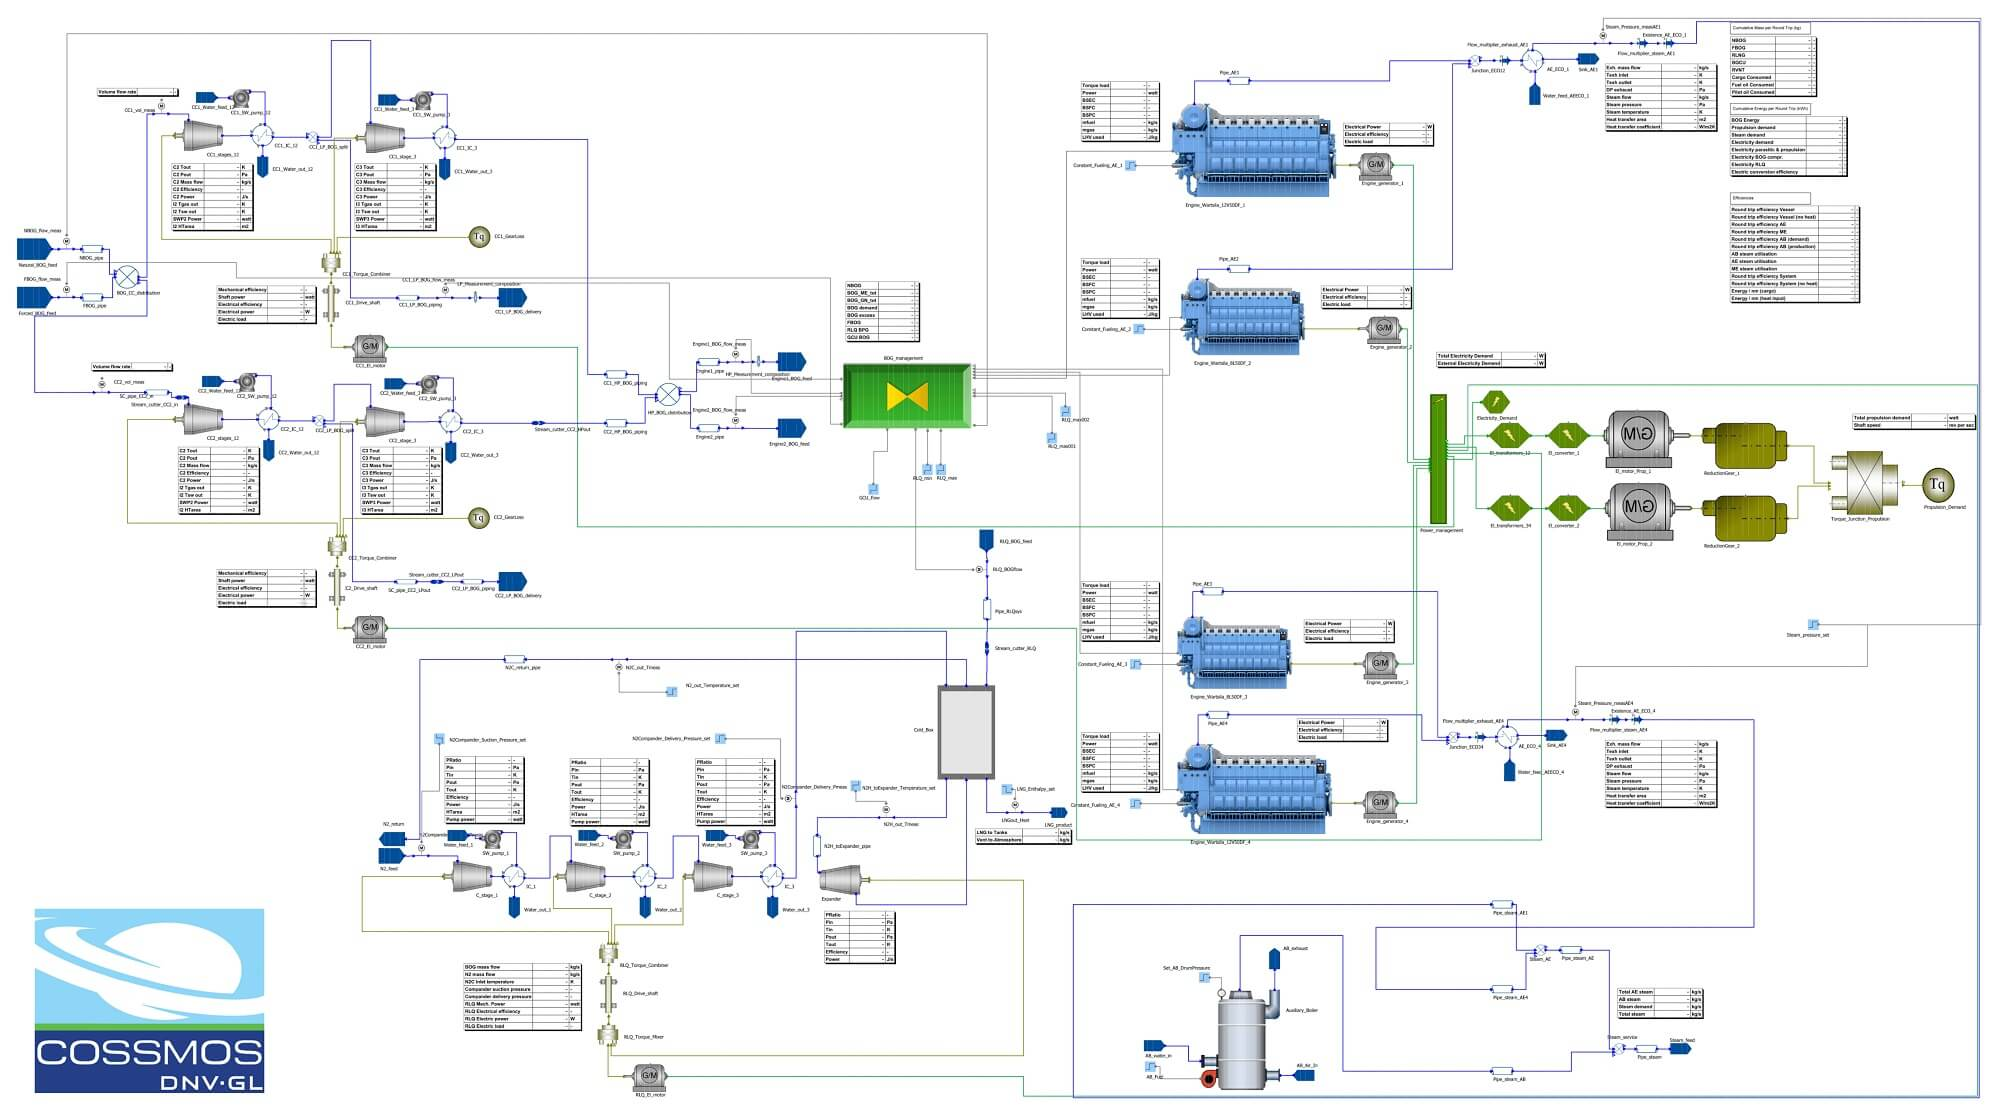 The LNGreen concept uses existing technology to improve energy efficiency and performance. - Credits: dnvgl.com